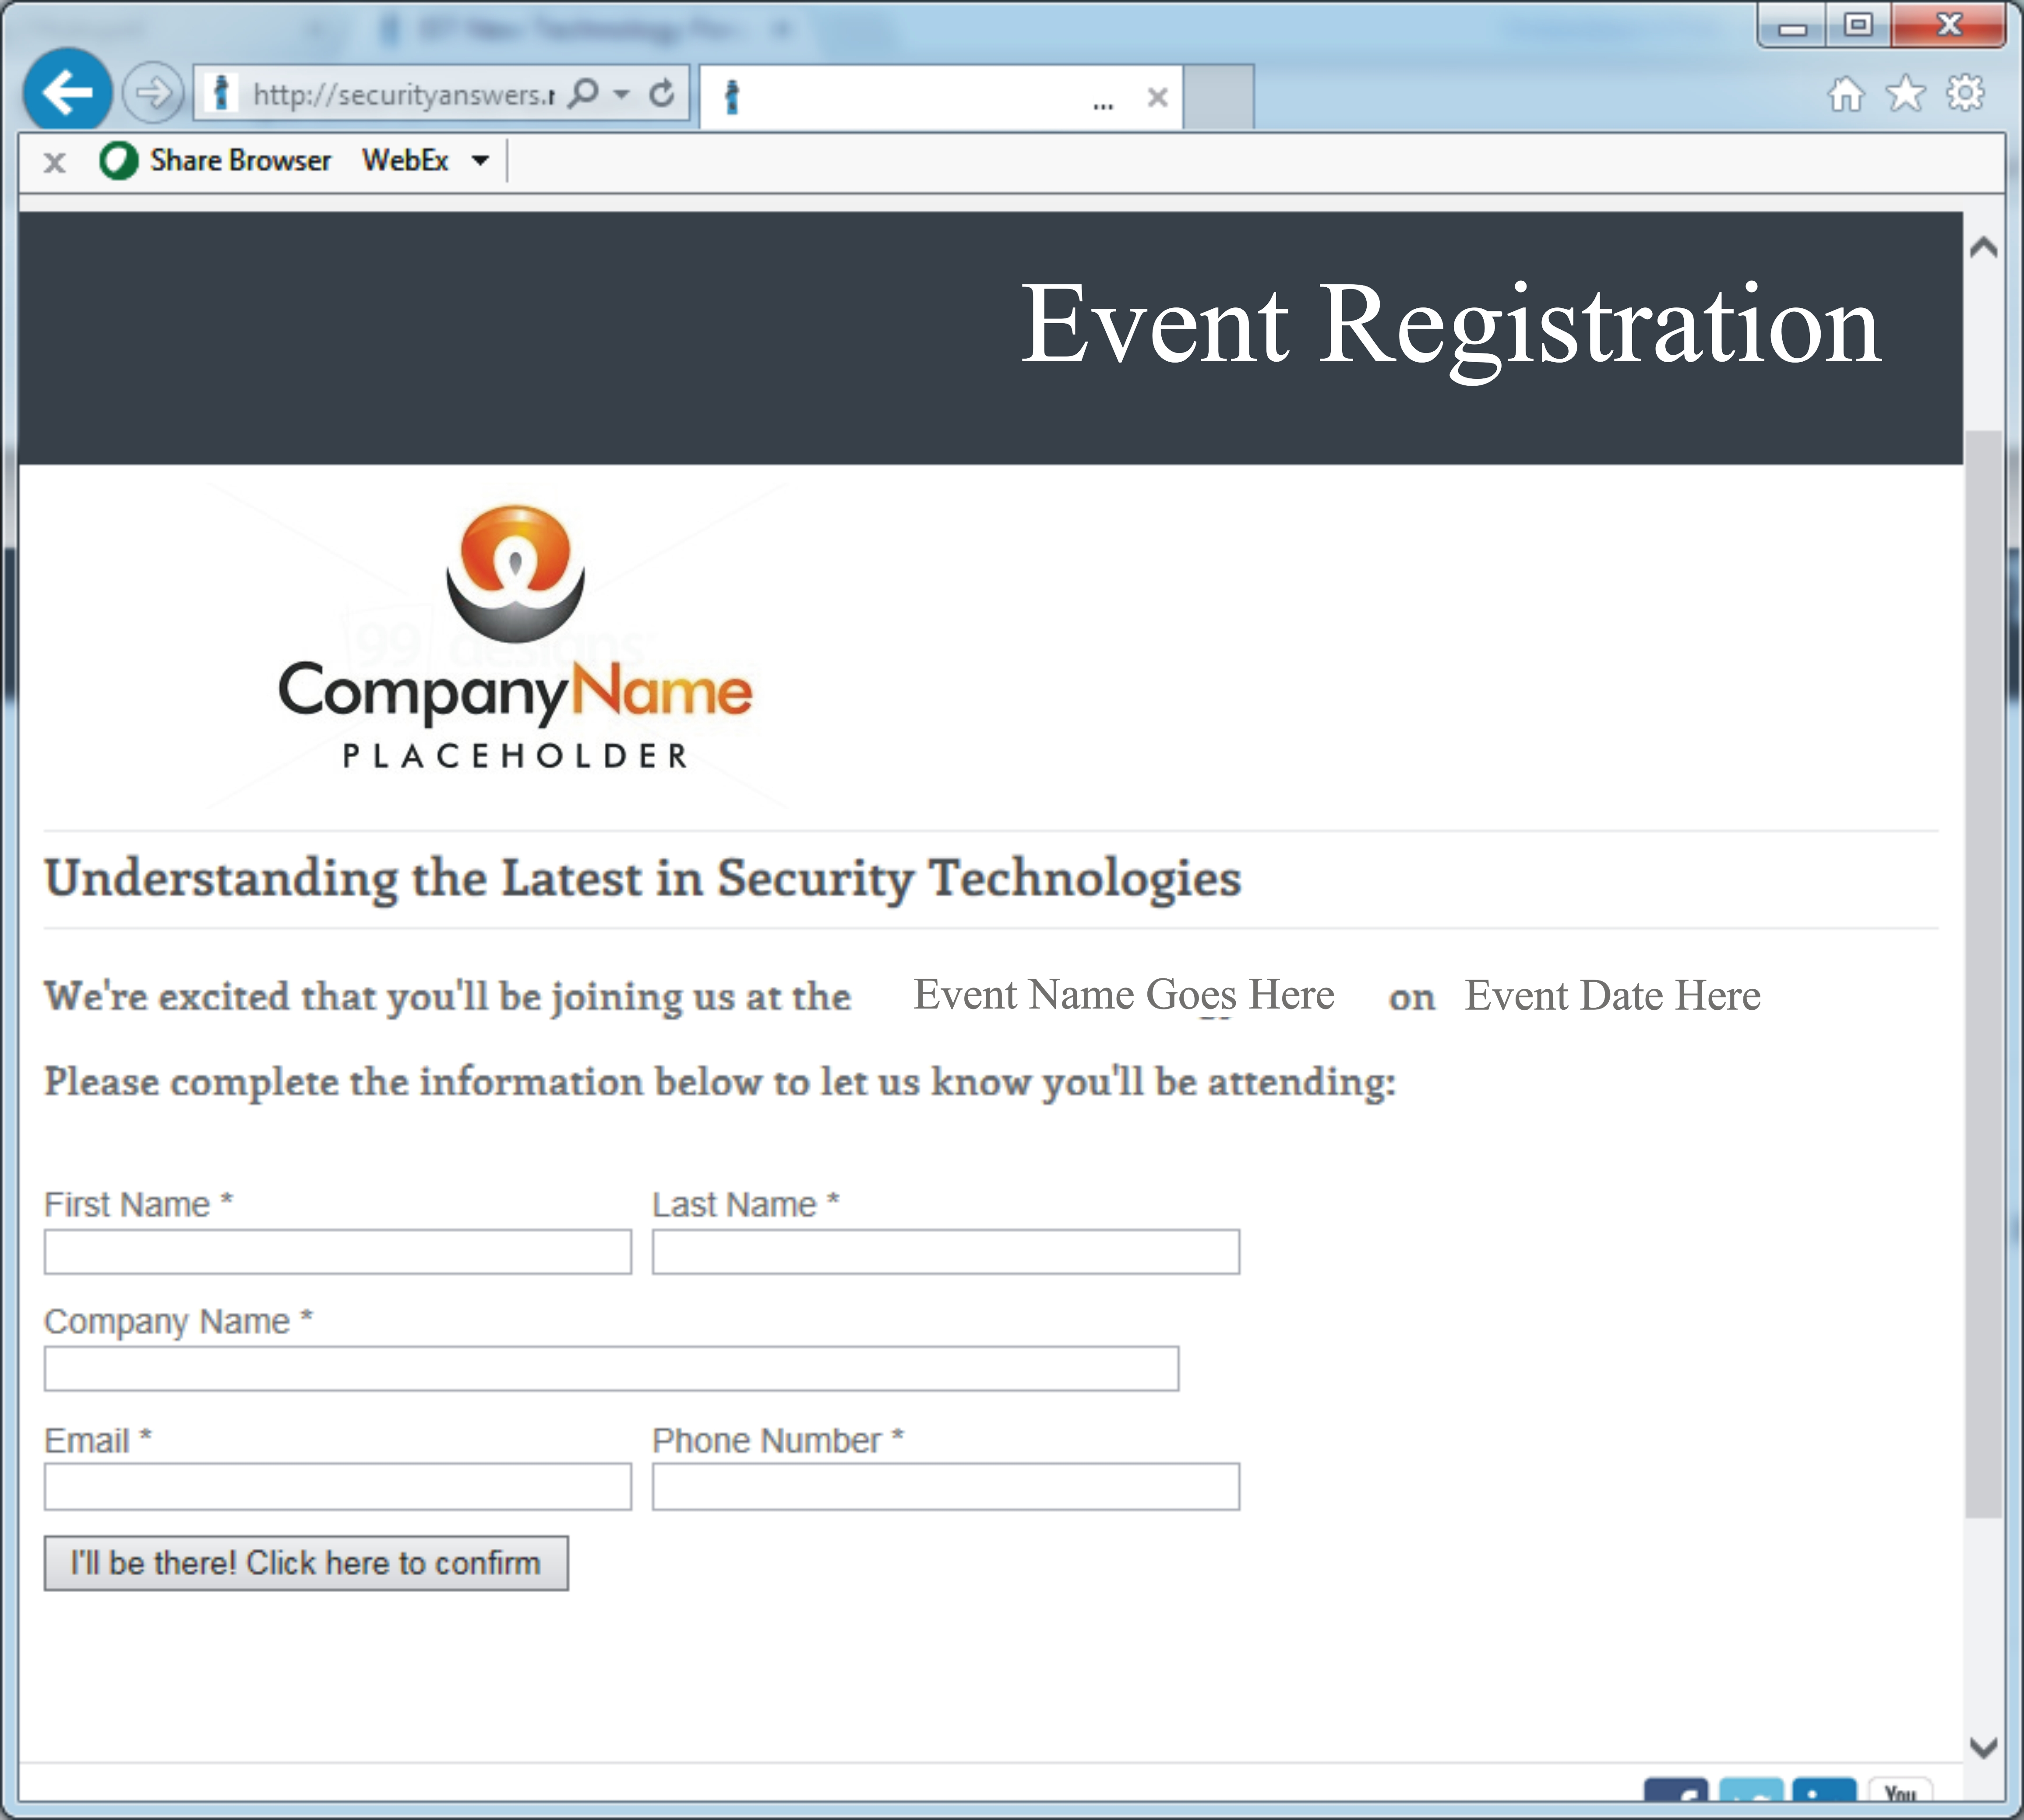 Event_Registration_Form_image